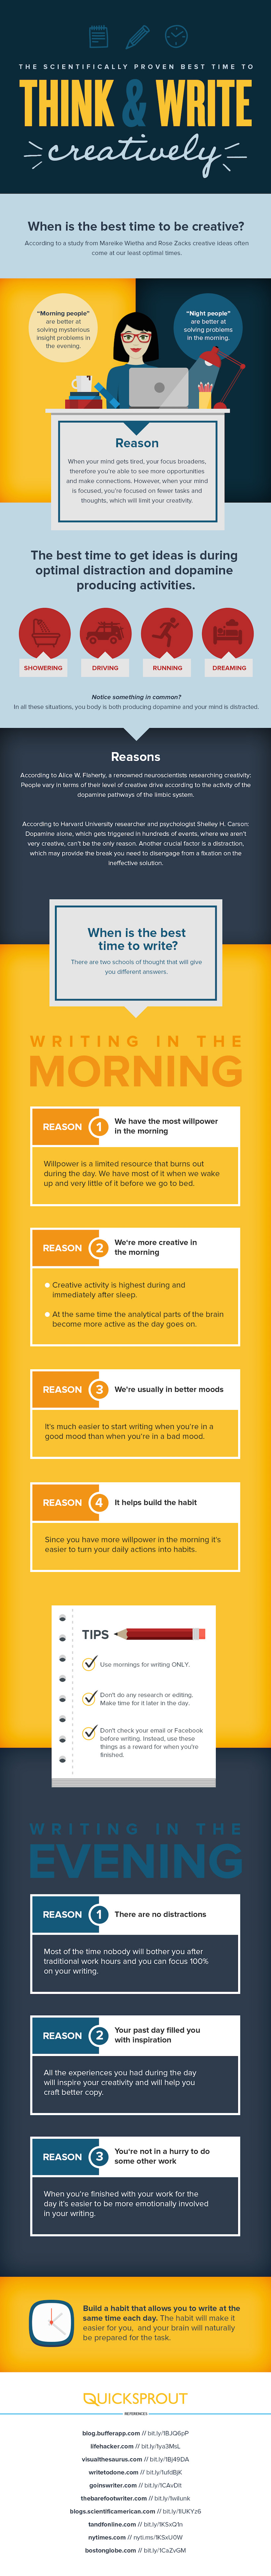 quicksprout-Best-Time-To-Write-infographic-image 5